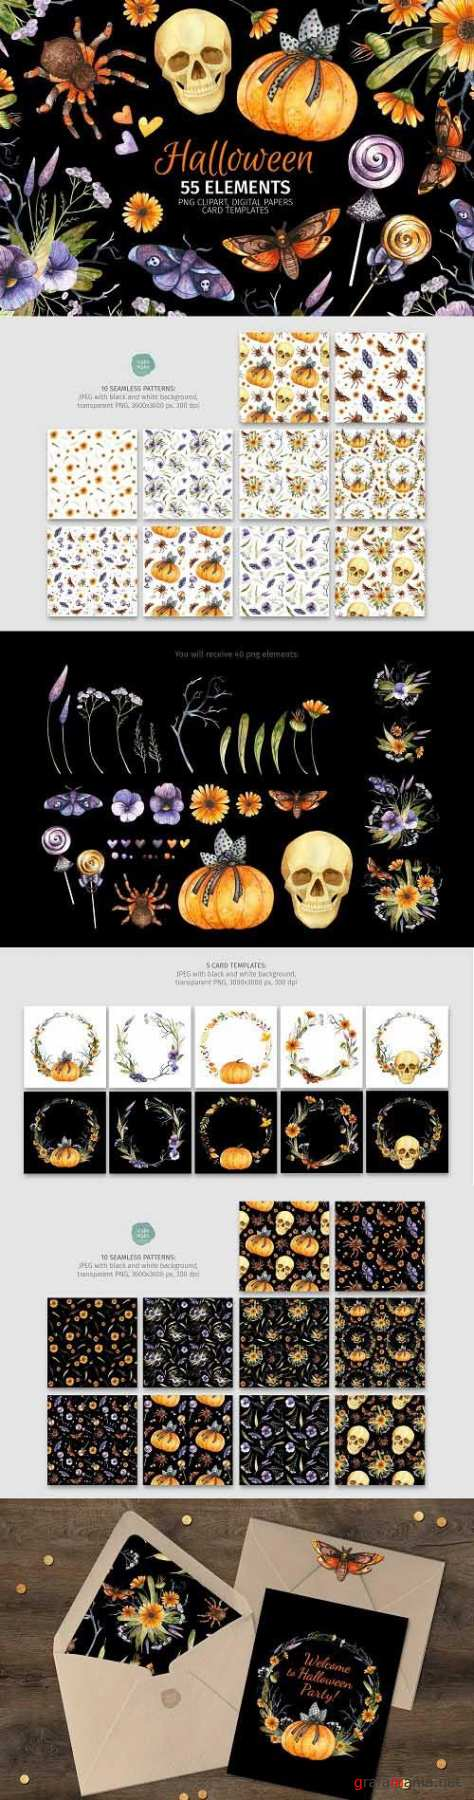 Halloween clipart, seamless patterns and card templates - 1481763